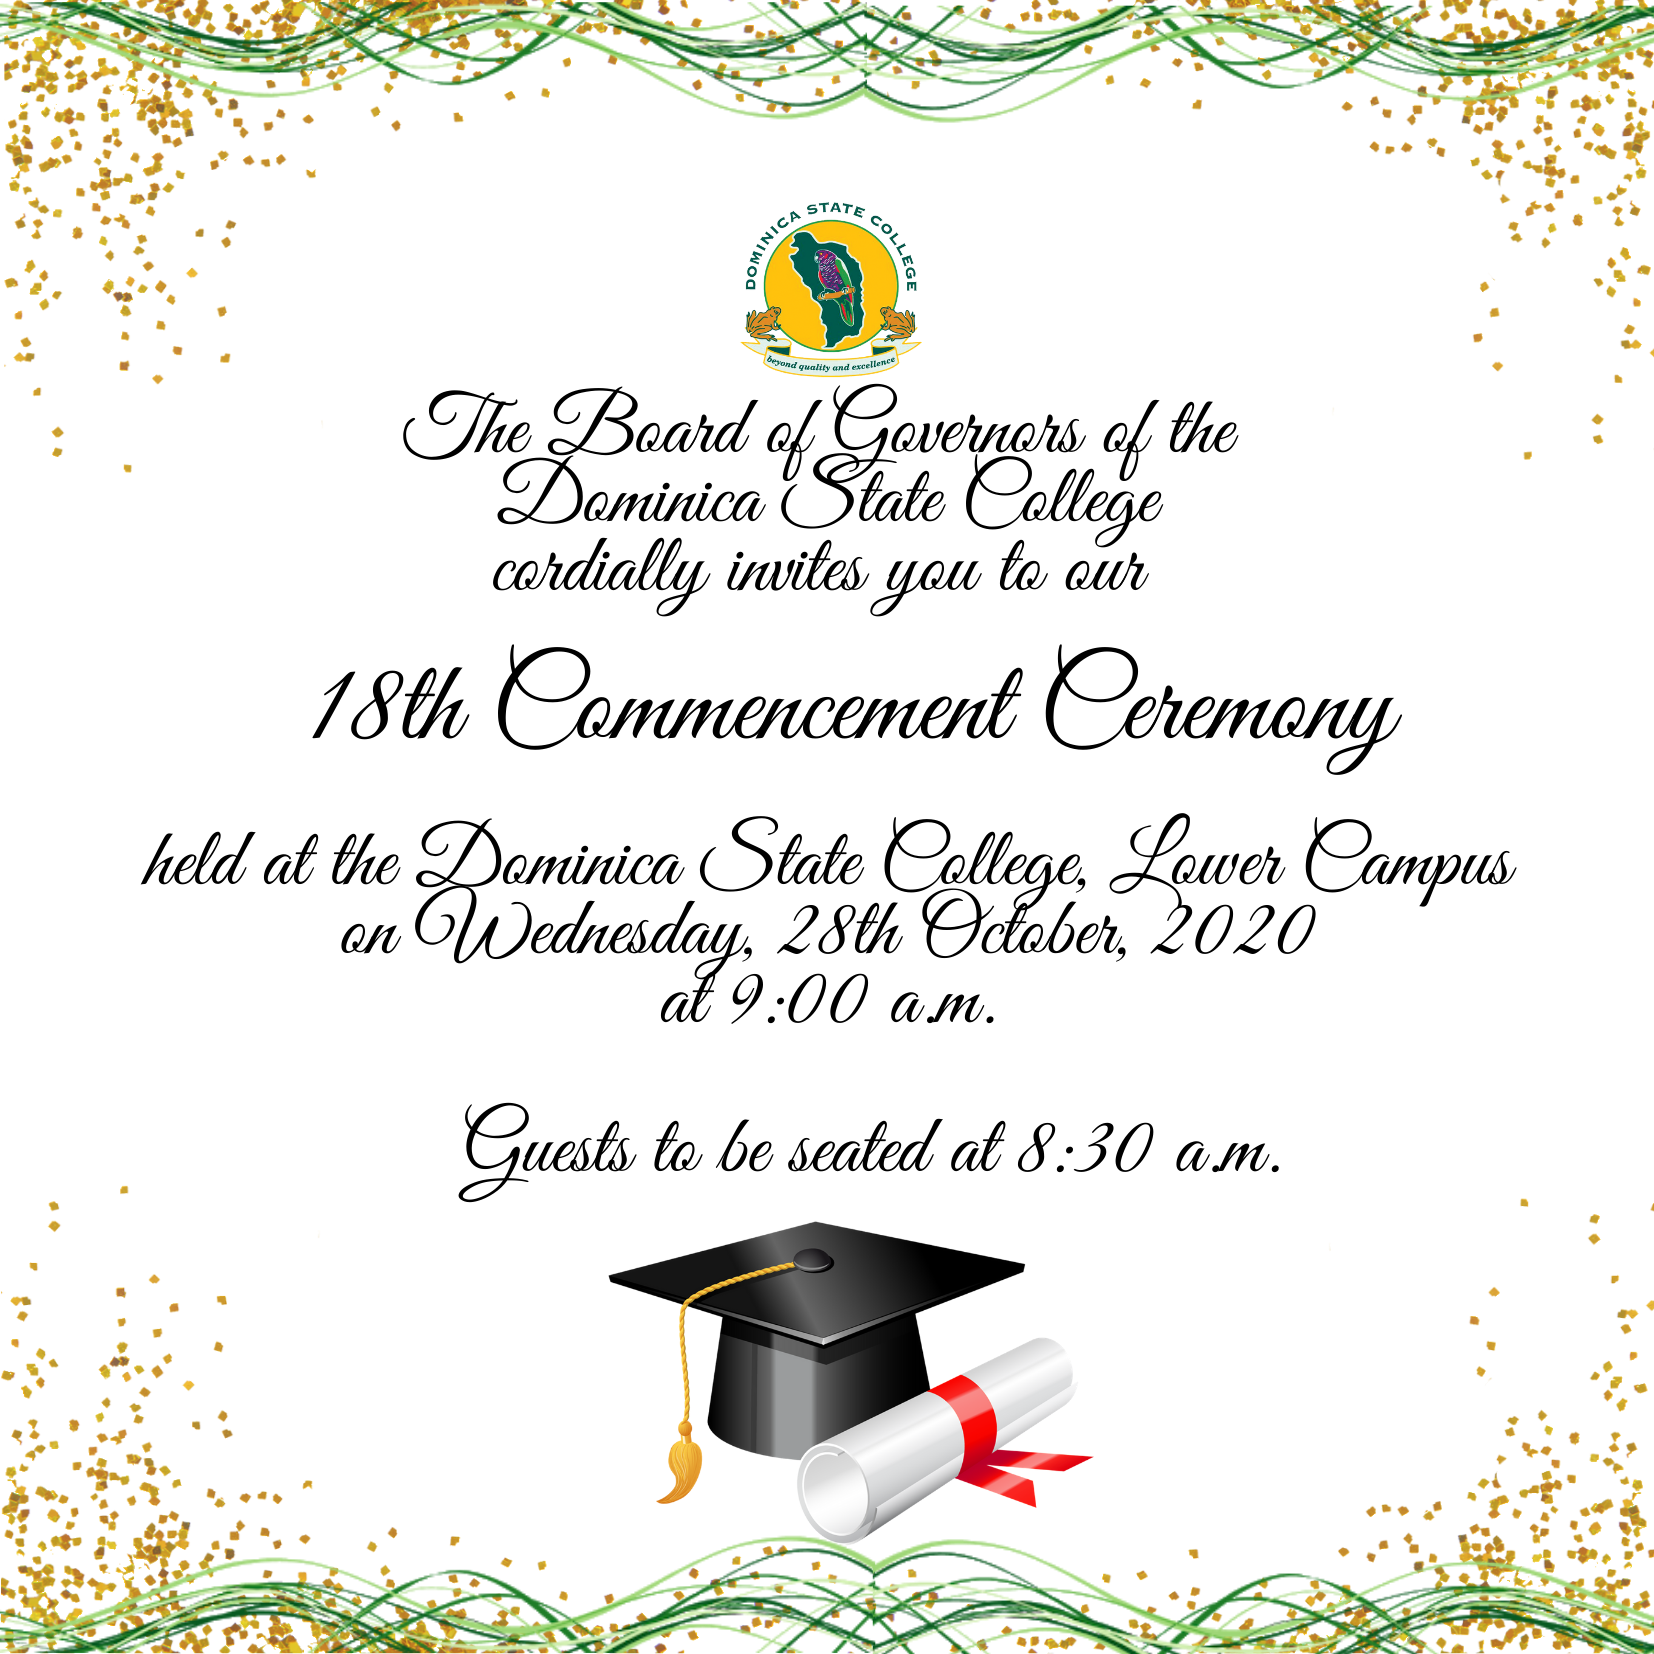 Dominica State College 18th Commencement Ceremony October 28 2020